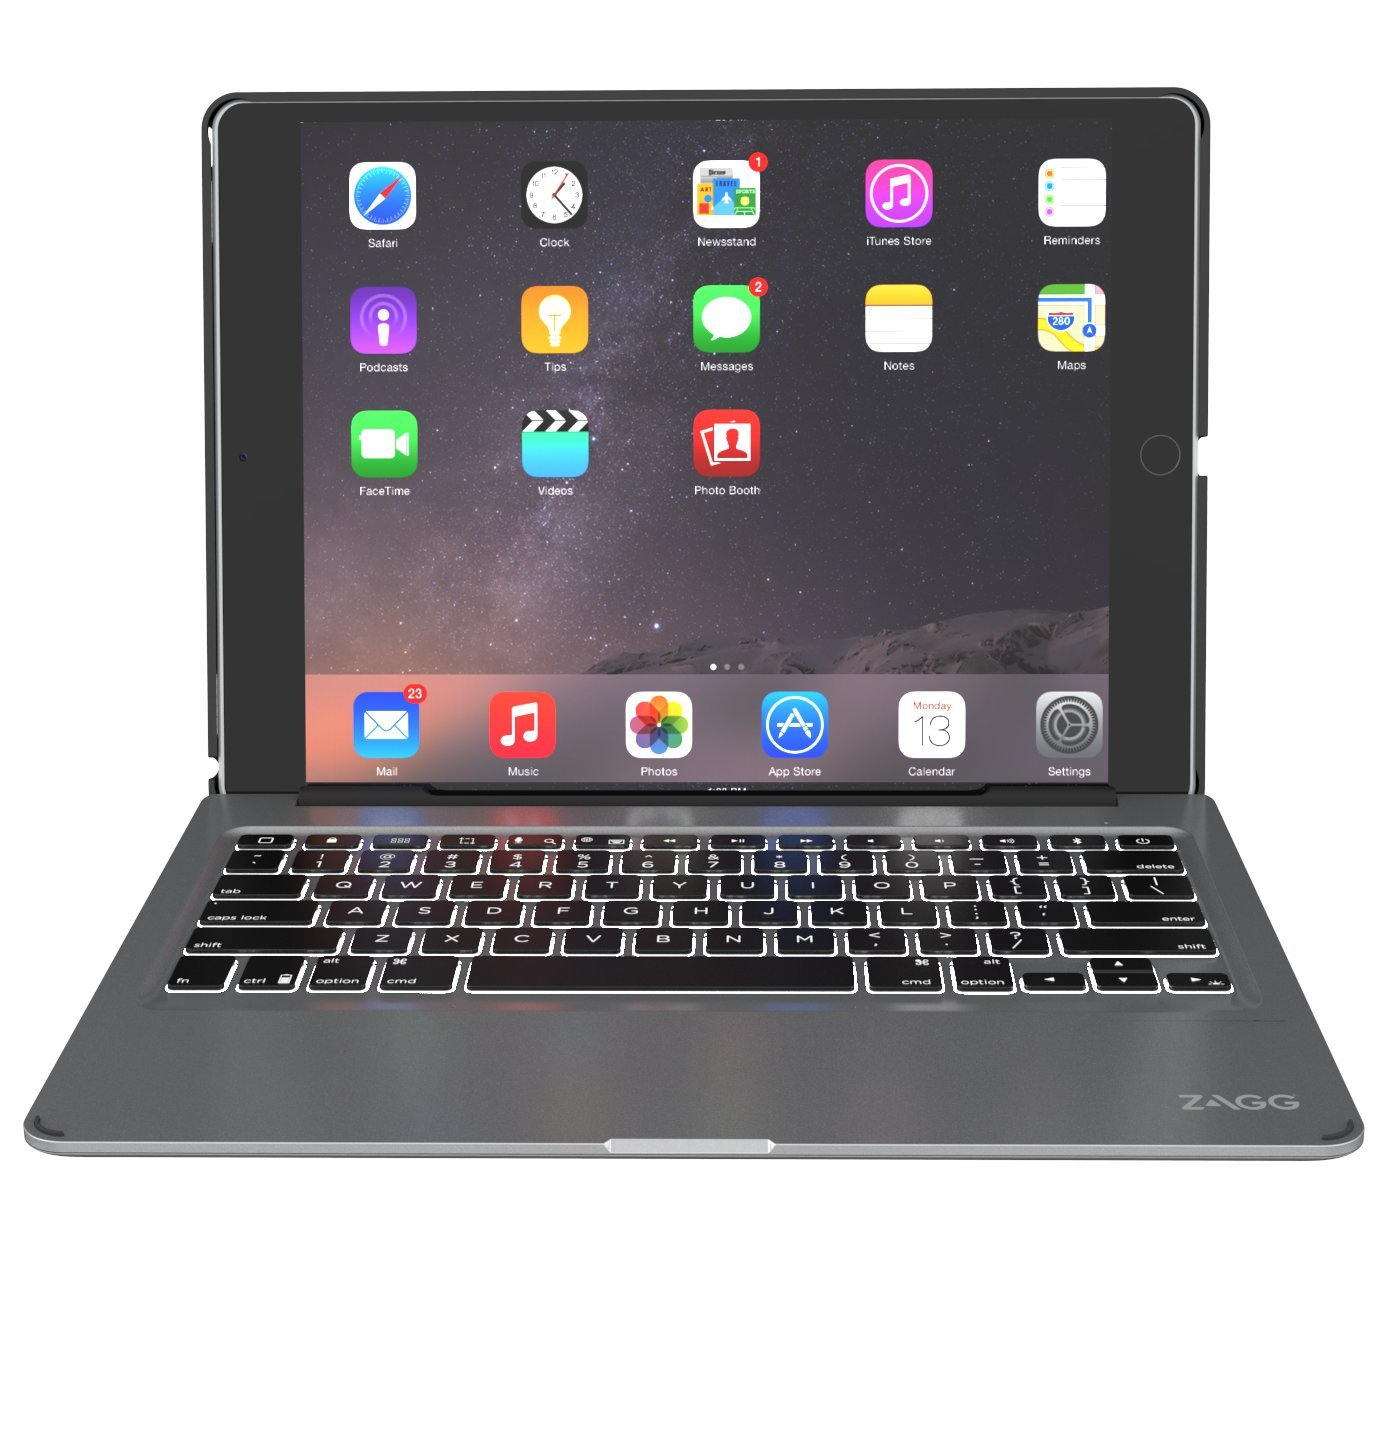 ZAGG Slim Book Ultrathin Case, Hinged with Detachable Backlit Keyboard for iPad Pro 12.9 - Black by ZAGG